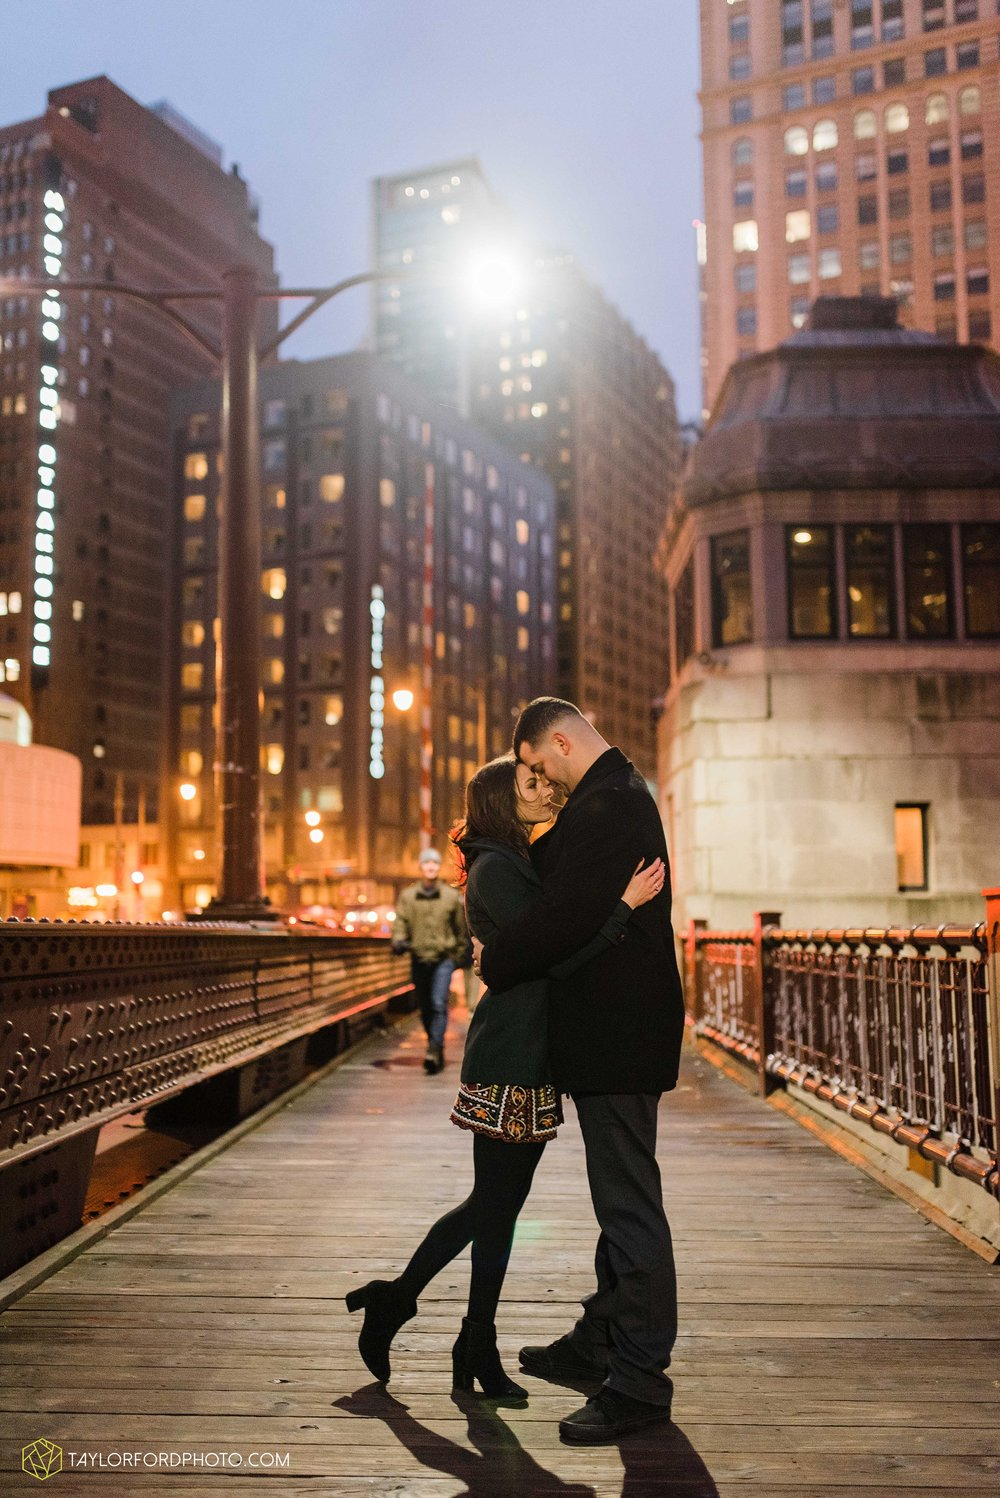 chicago-illinois-engagement-lincoln-park-zoo-downtown-millenium-park-cloud-gate-photographer-Taylor-Ford-Photography_6062.jpg